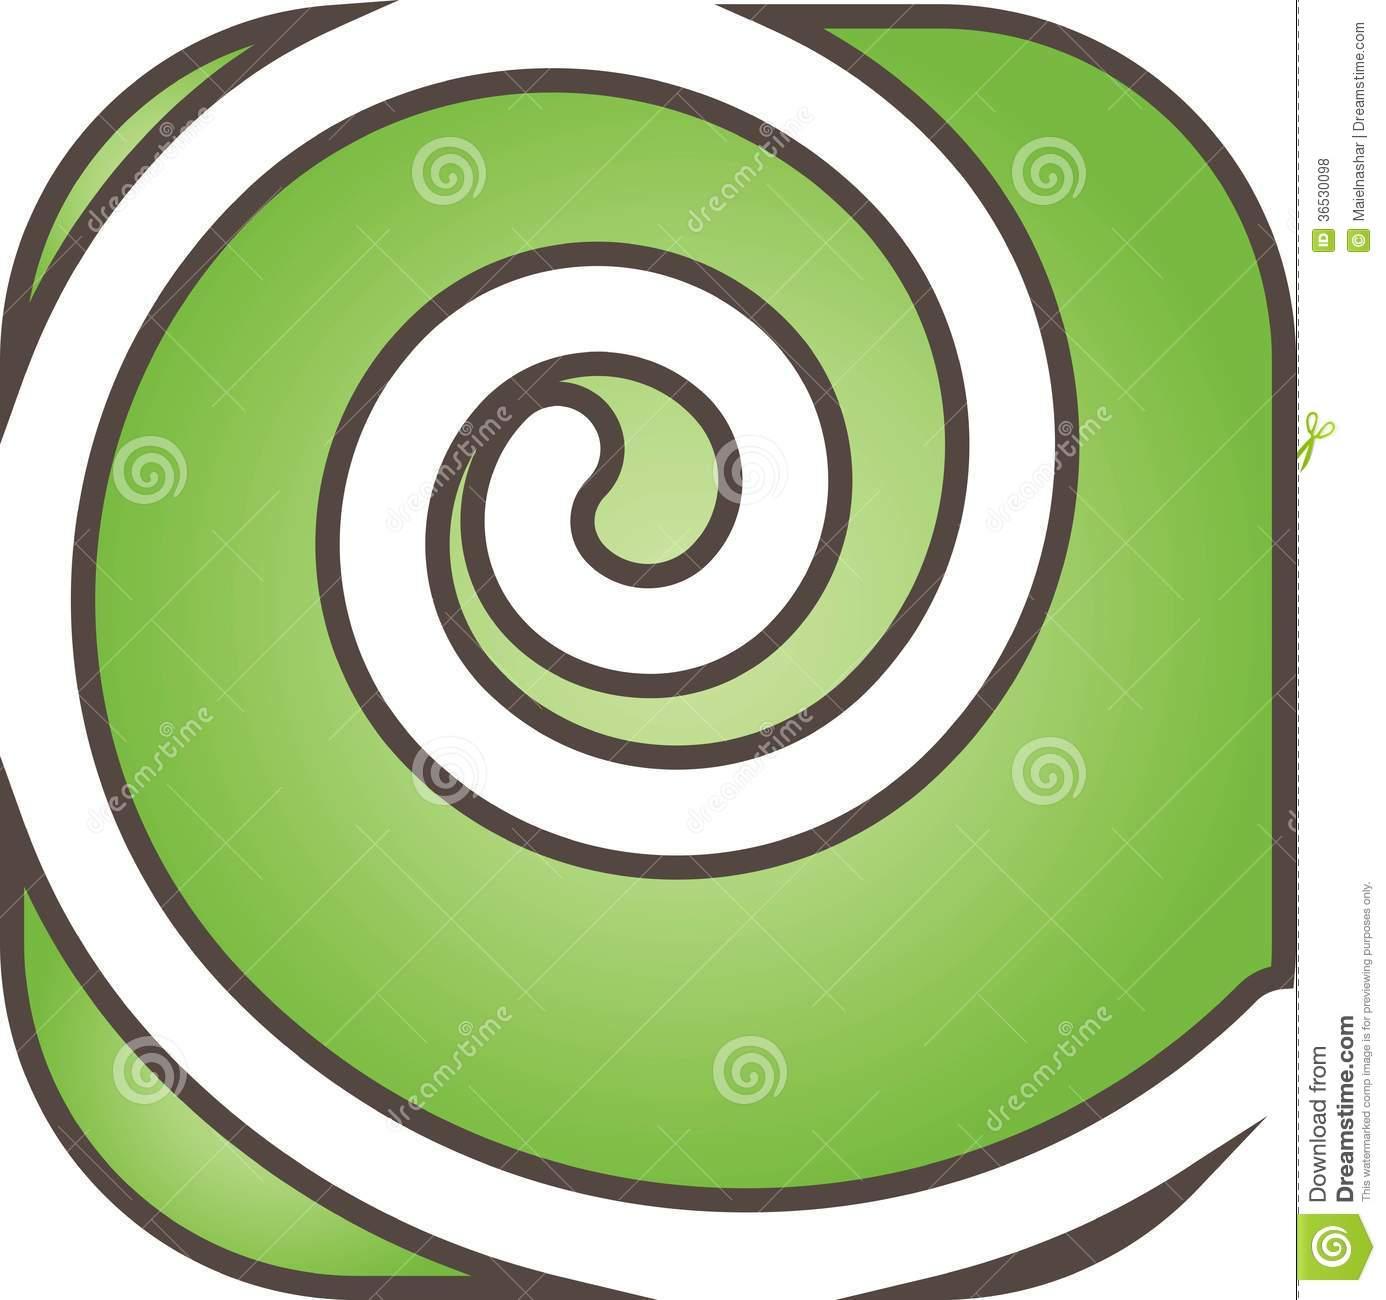 Green Swirl Royalty Free Stock Photos - Image: 36530098